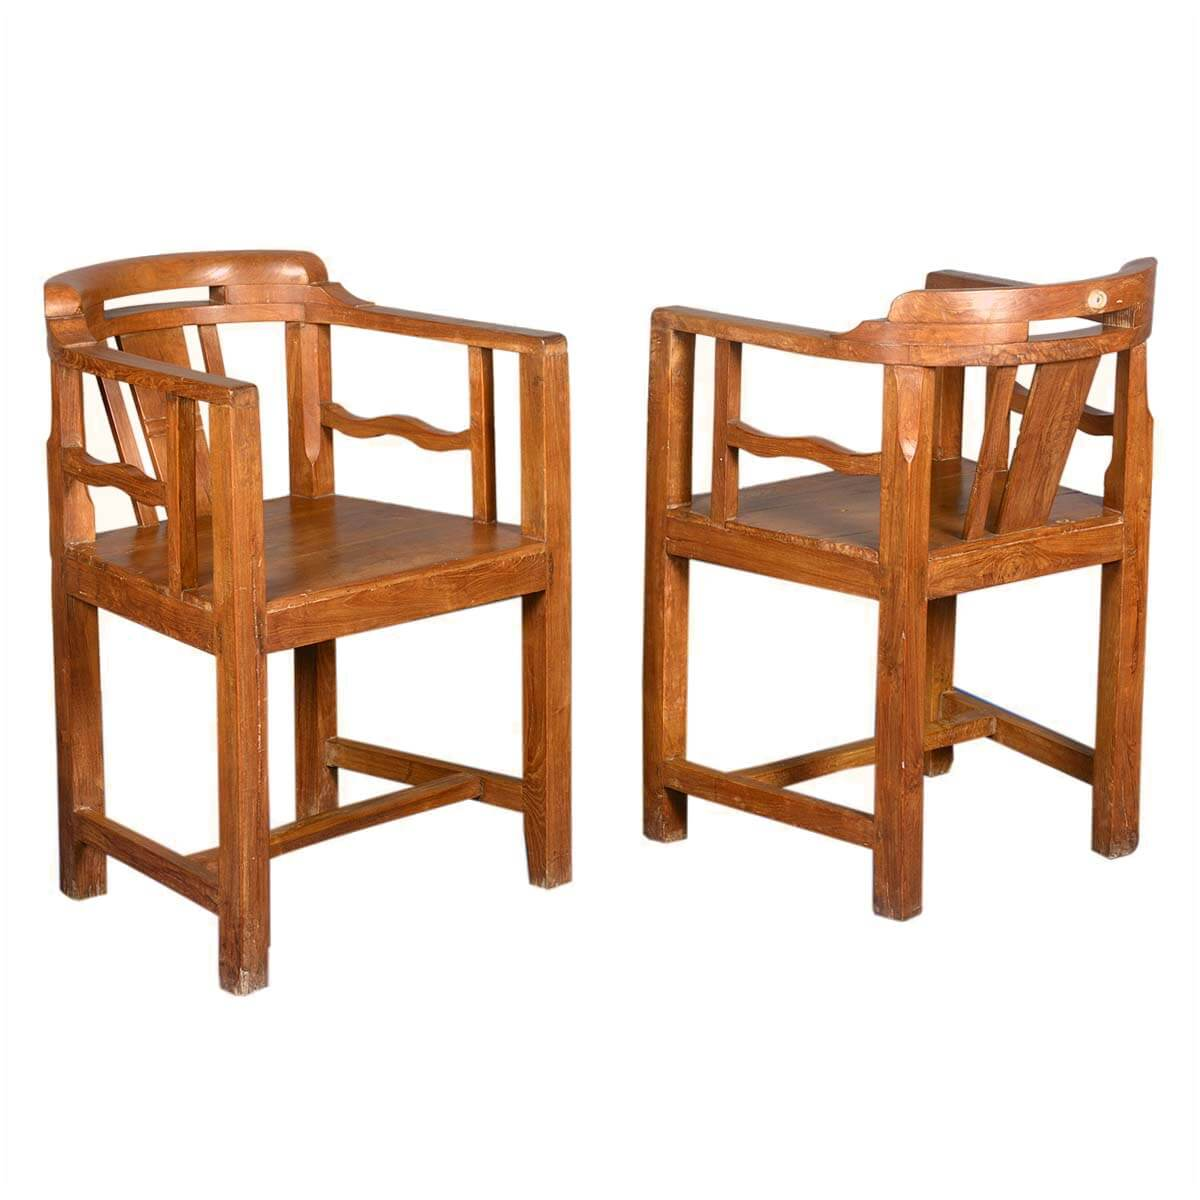 Marvelous photograph of  Dining Chairs Contemporary Solid Teak Wood Curved Back Captain's Chair with #441E08 color and 1200x1200 pixels